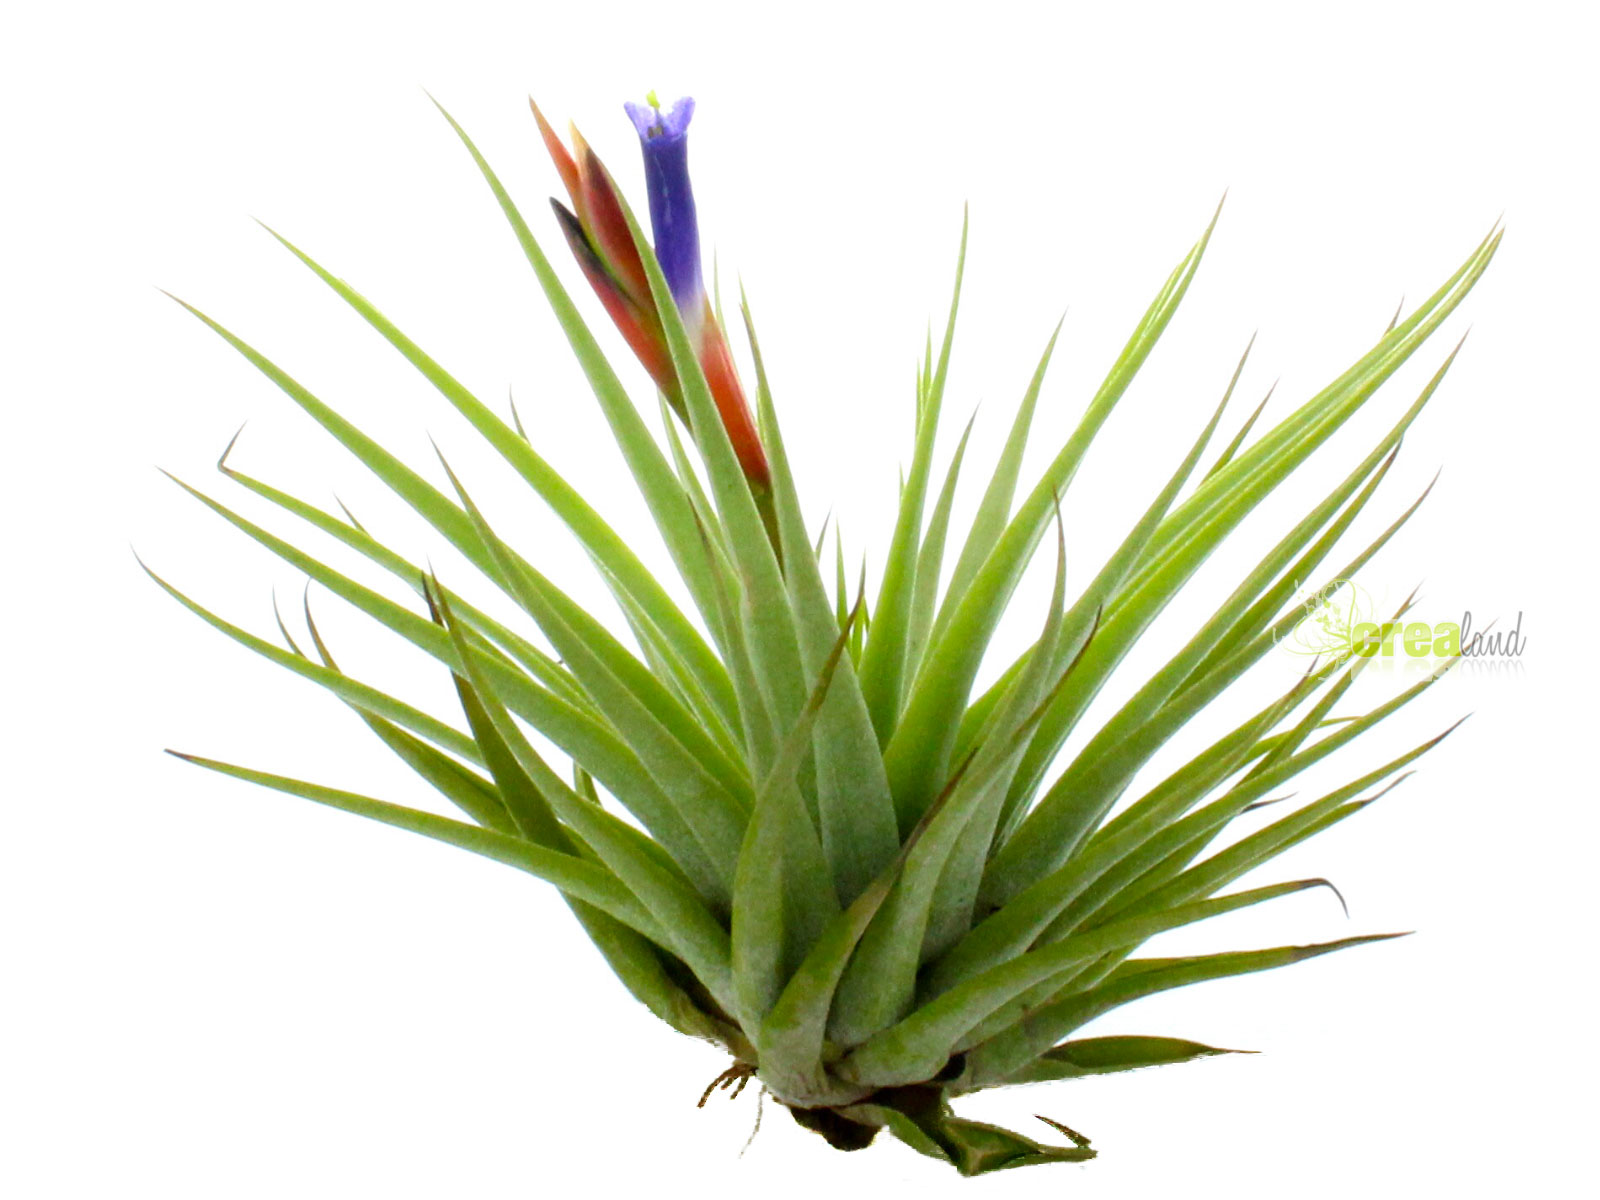 tillandsia espinosae plante sans terre entretien et id es d coration. Black Bedroom Furniture Sets. Home Design Ideas